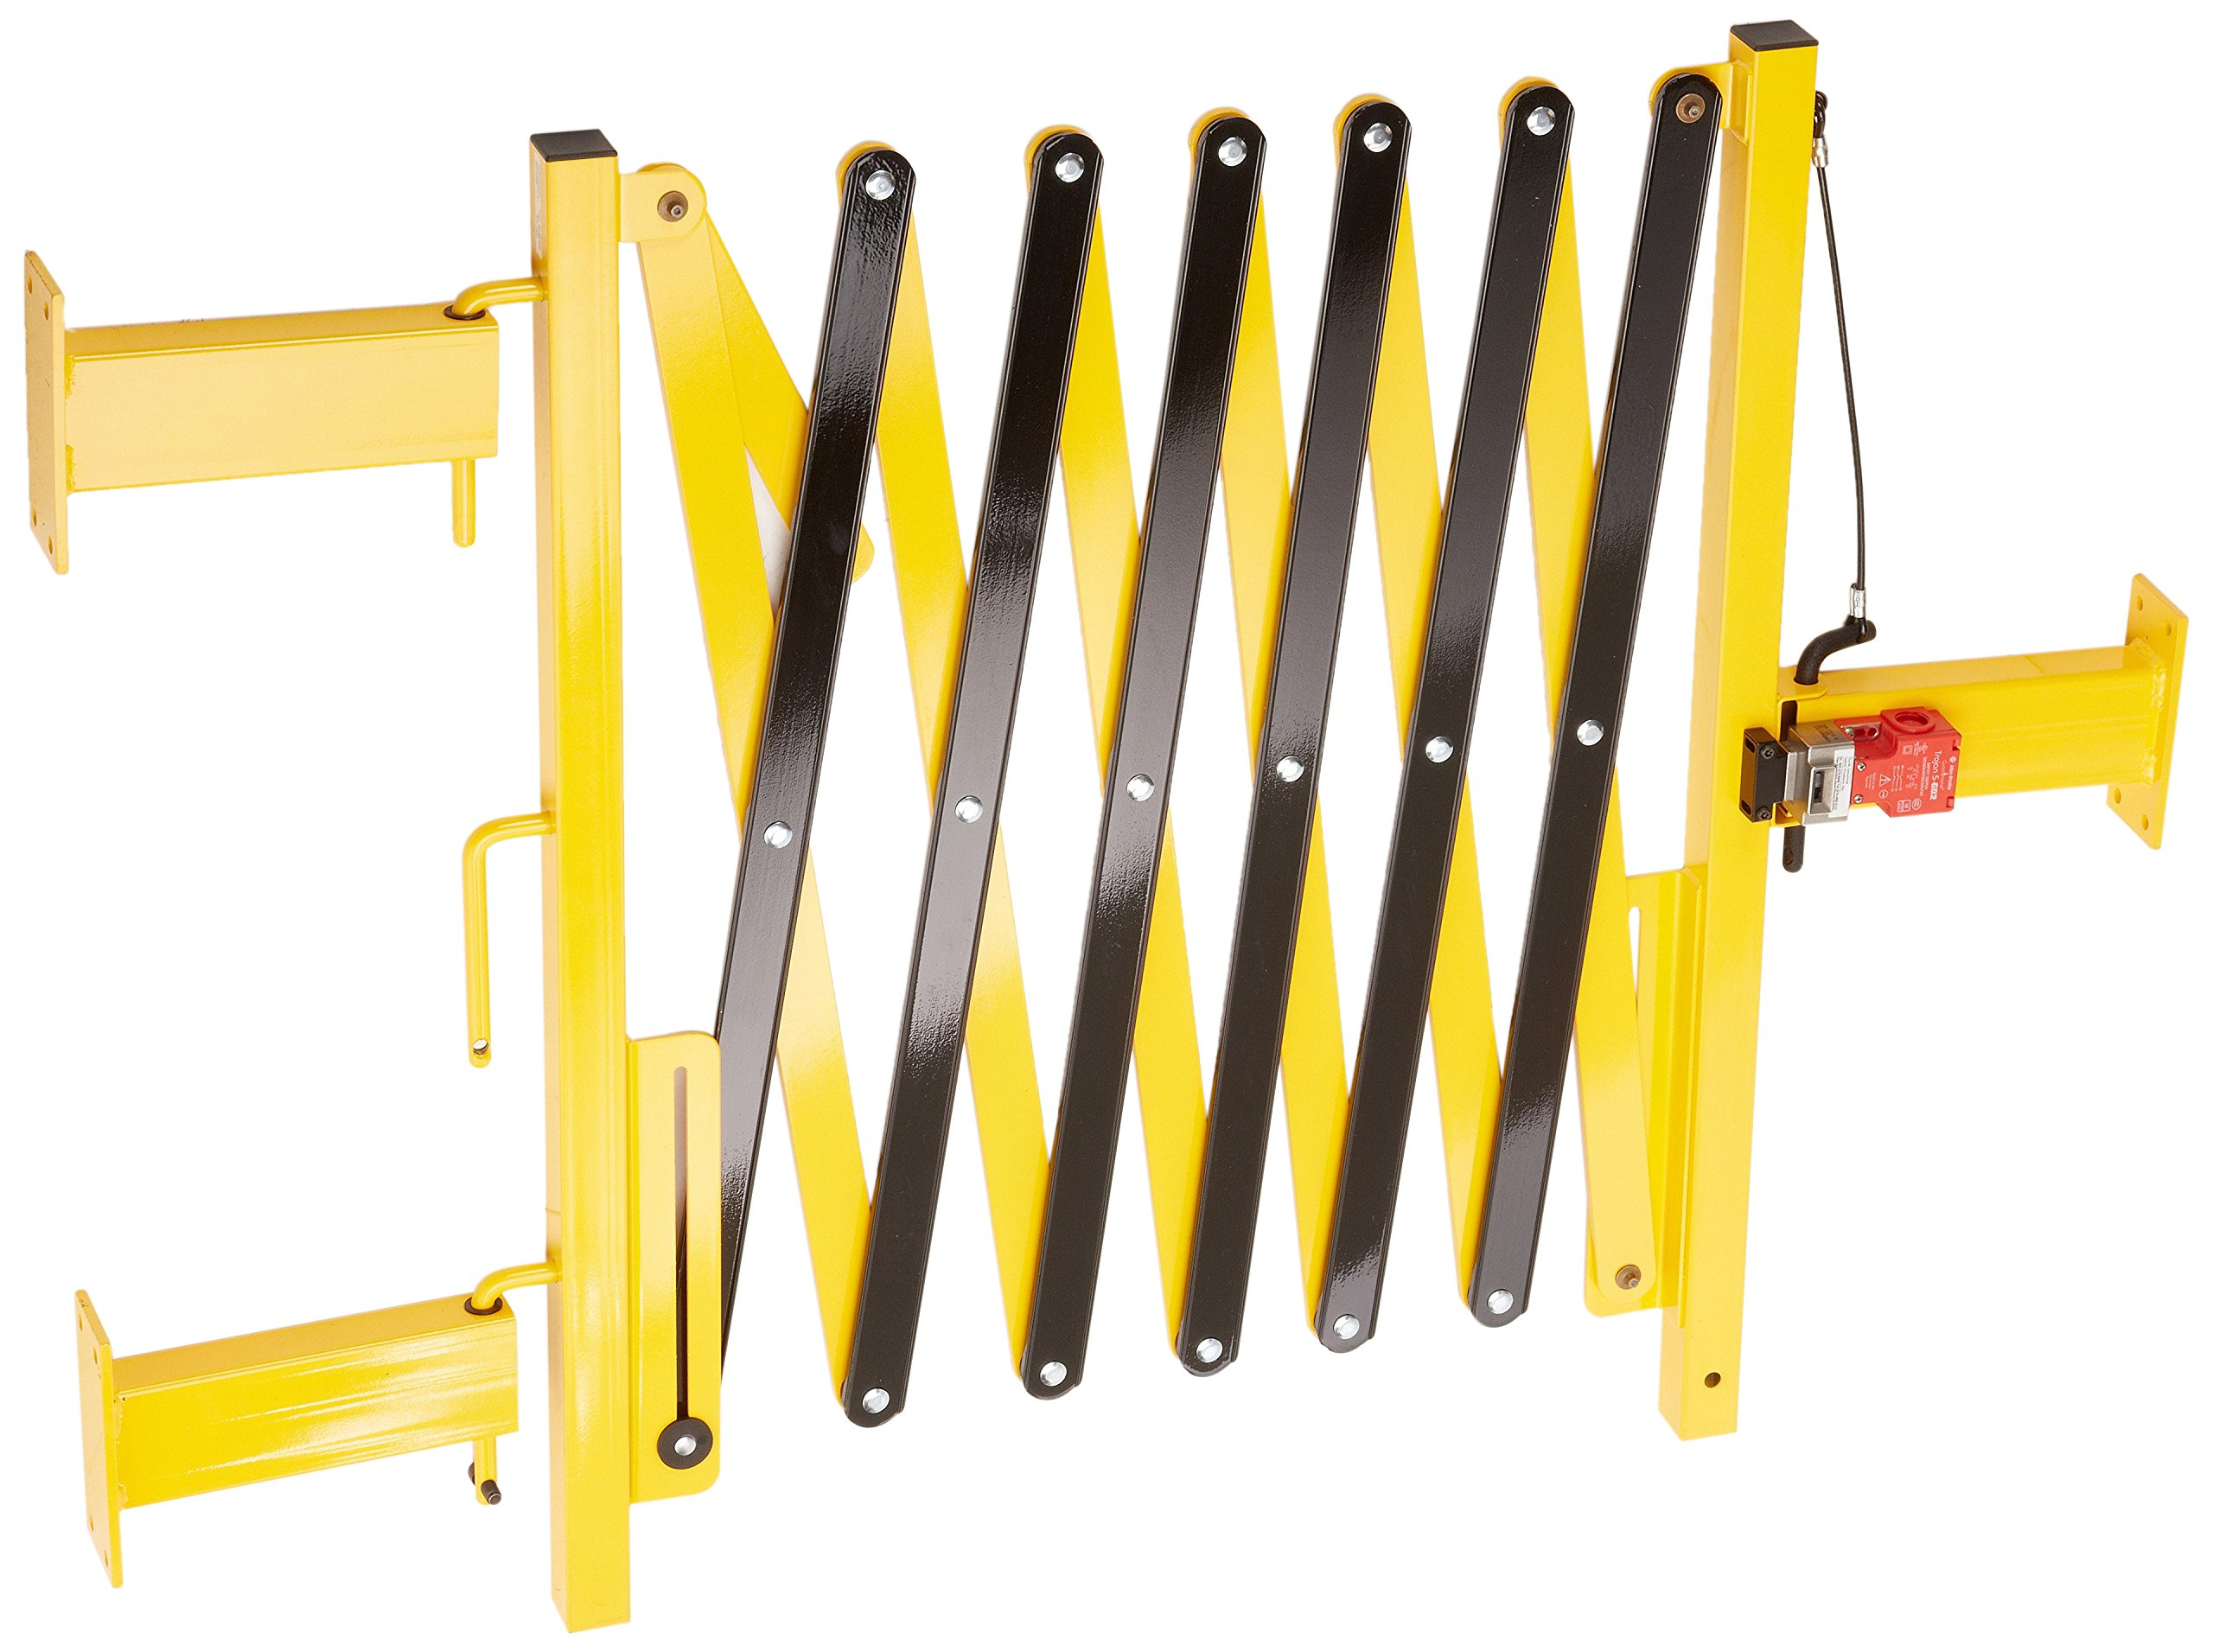 Rear-Guard RG-1000 Aluminum/Steel Machine Guarding Barricade with Mounting Bracket and Interlock Switch, 36'' Height, Yellow/Black